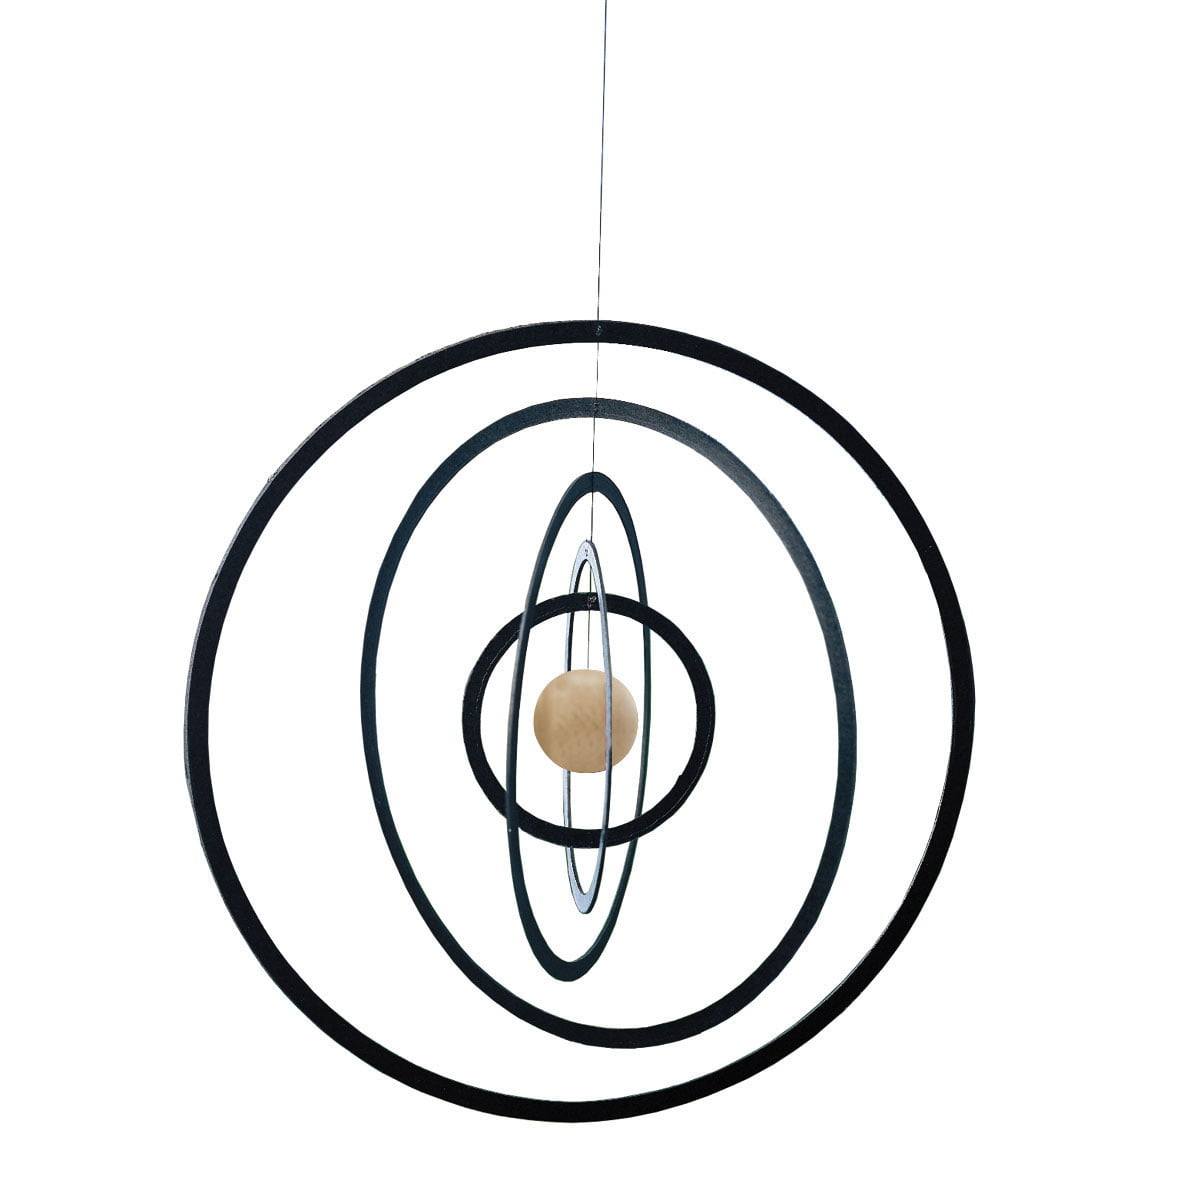 Flensted Mobiles Science Fiction Mobile Connox